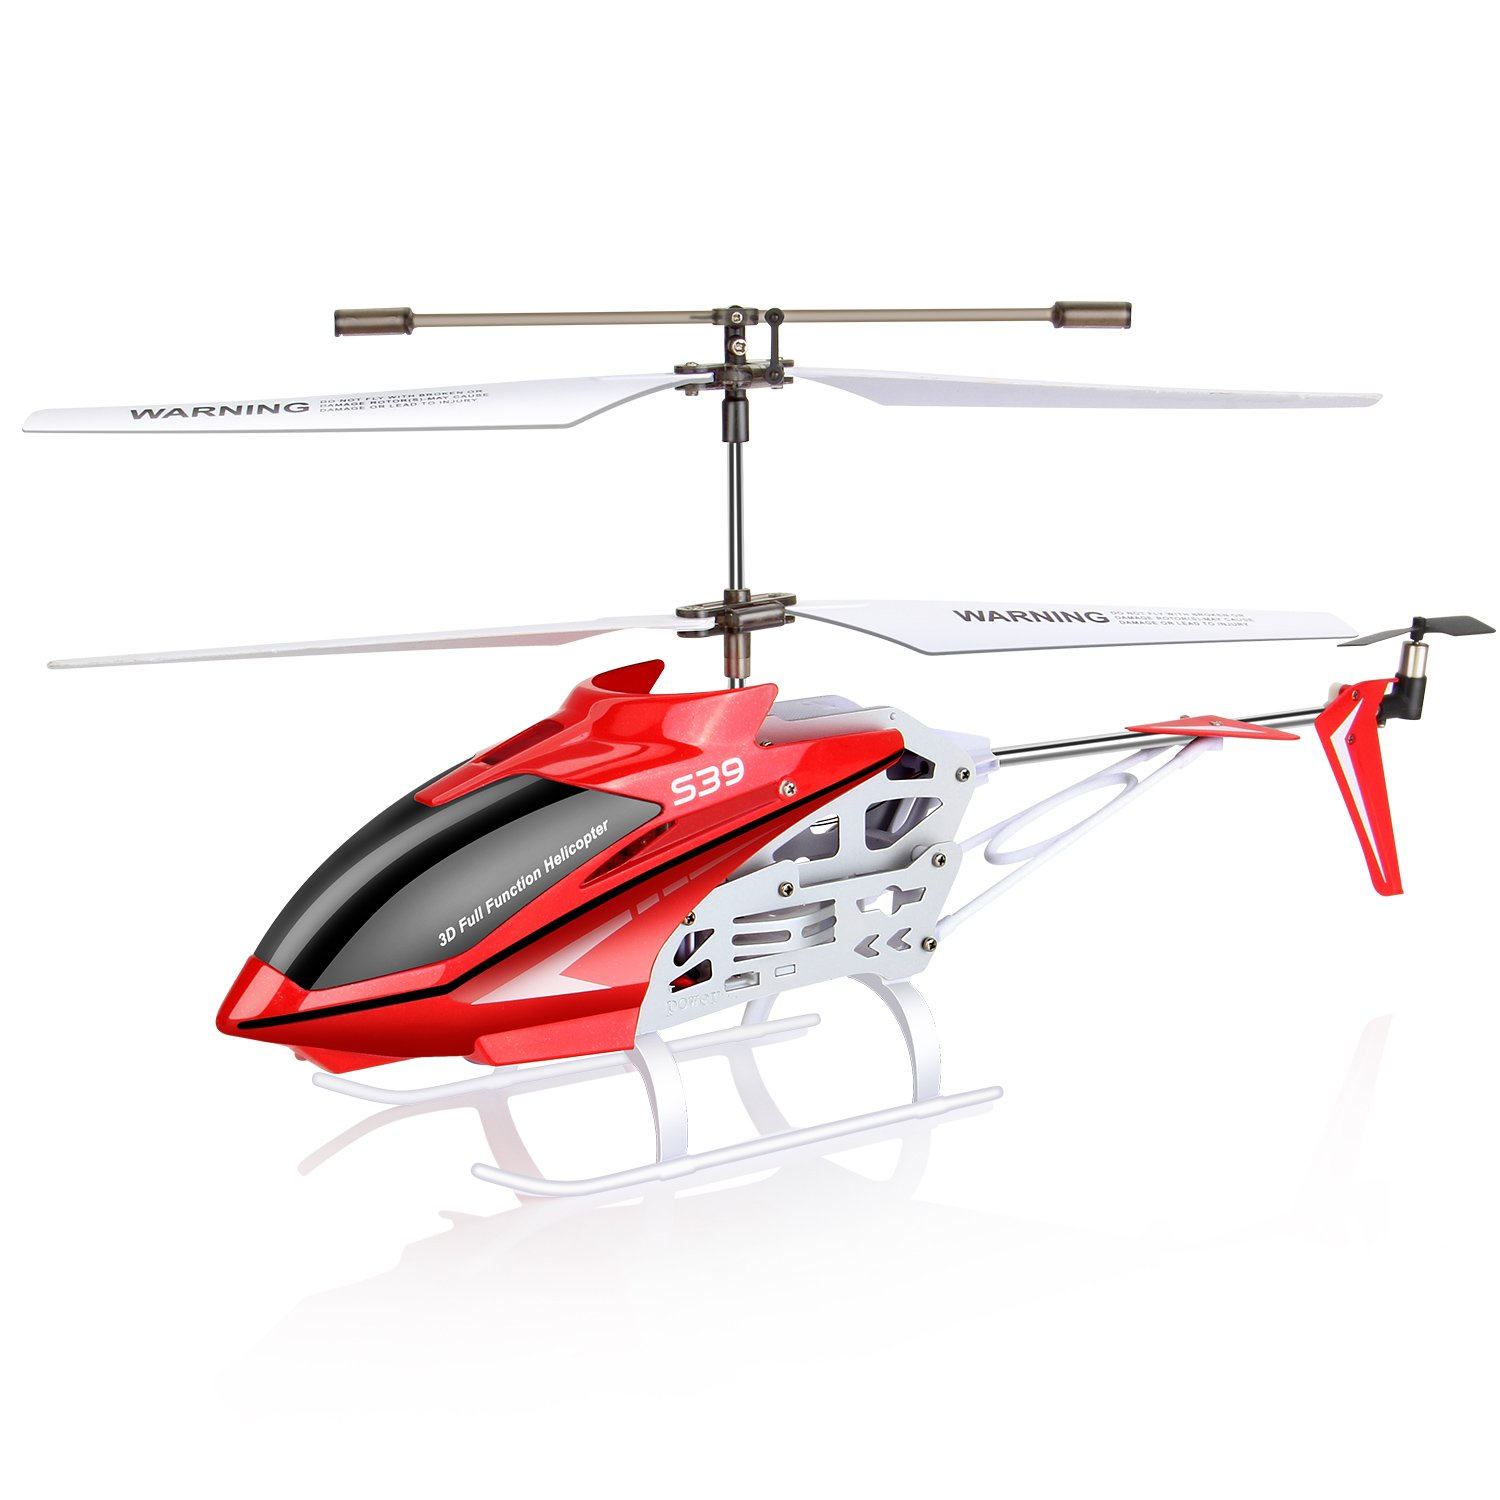 Syma S39 best cheap radio controlled helicopter